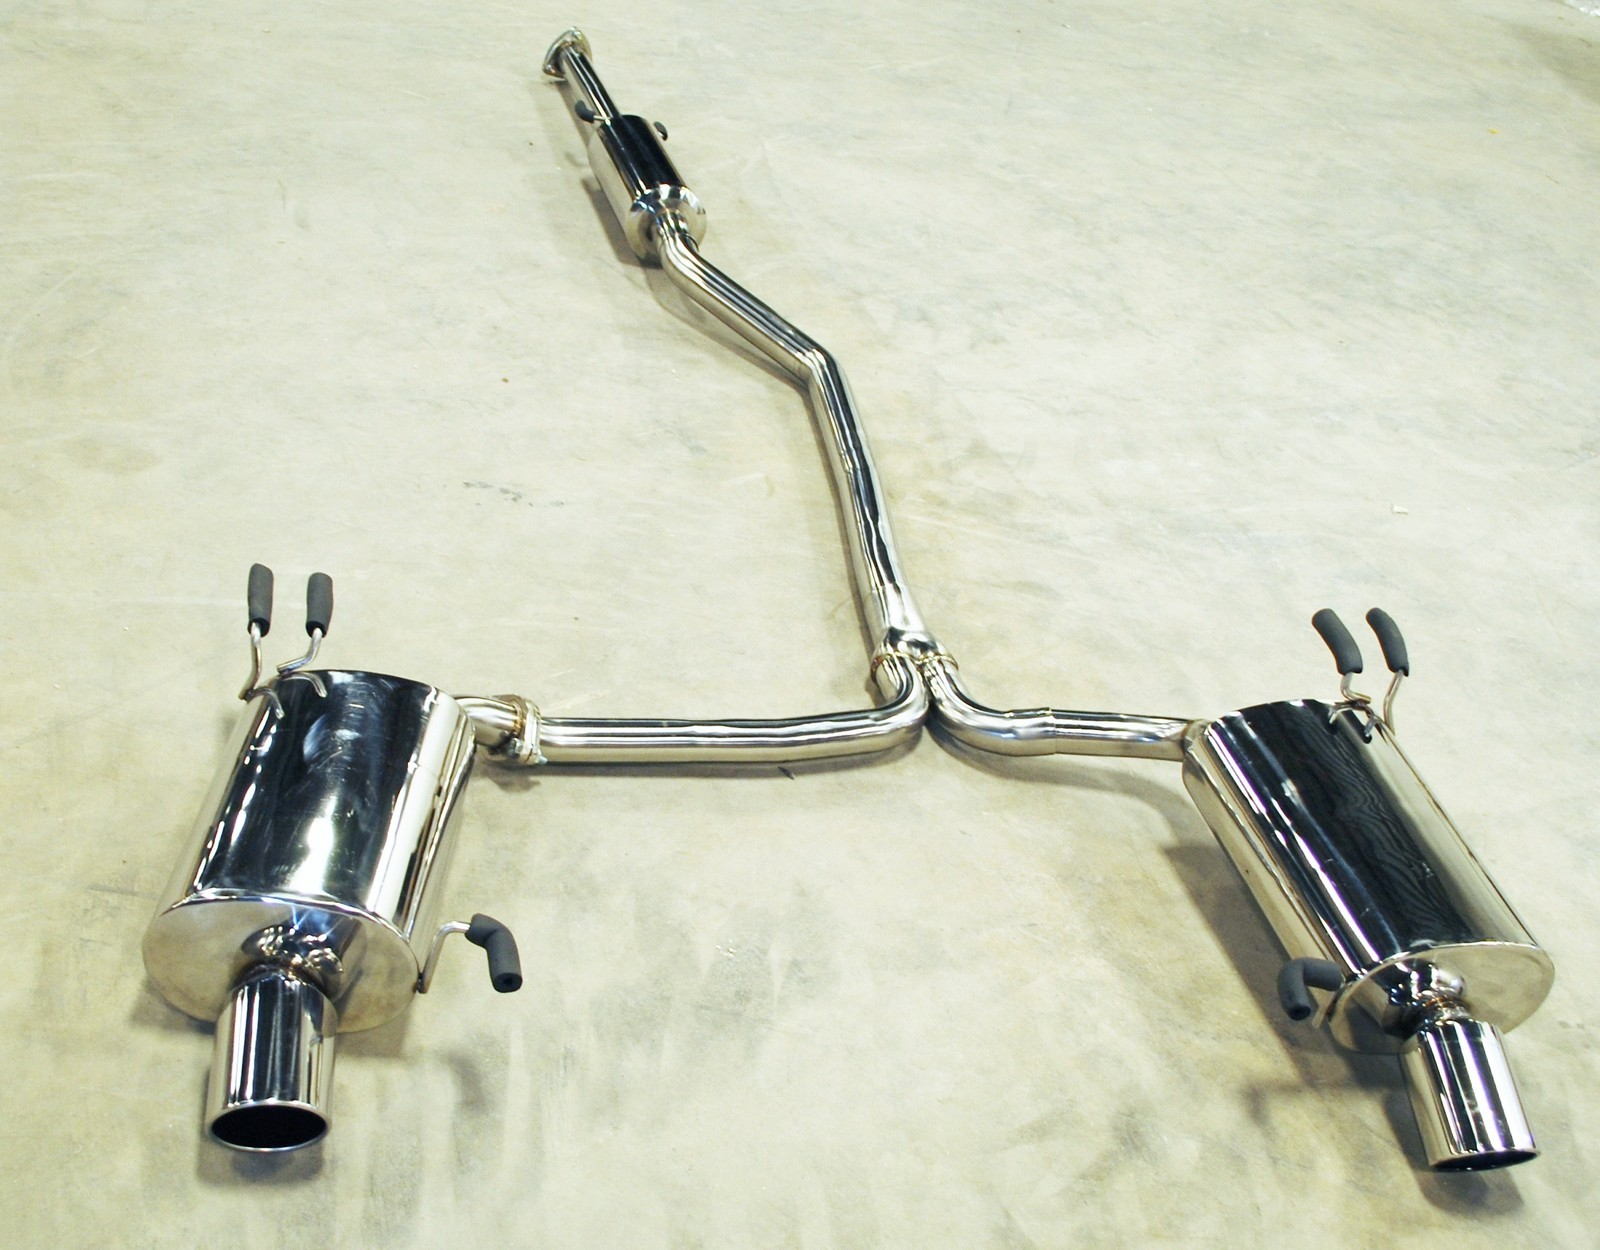 direct bolt on 2009 2012 acura tl dual 4 tip 2 25 piping catback exhaust muffler system direct bolt on 2009 2012 acura tl dual 4 tip 2 25 piping